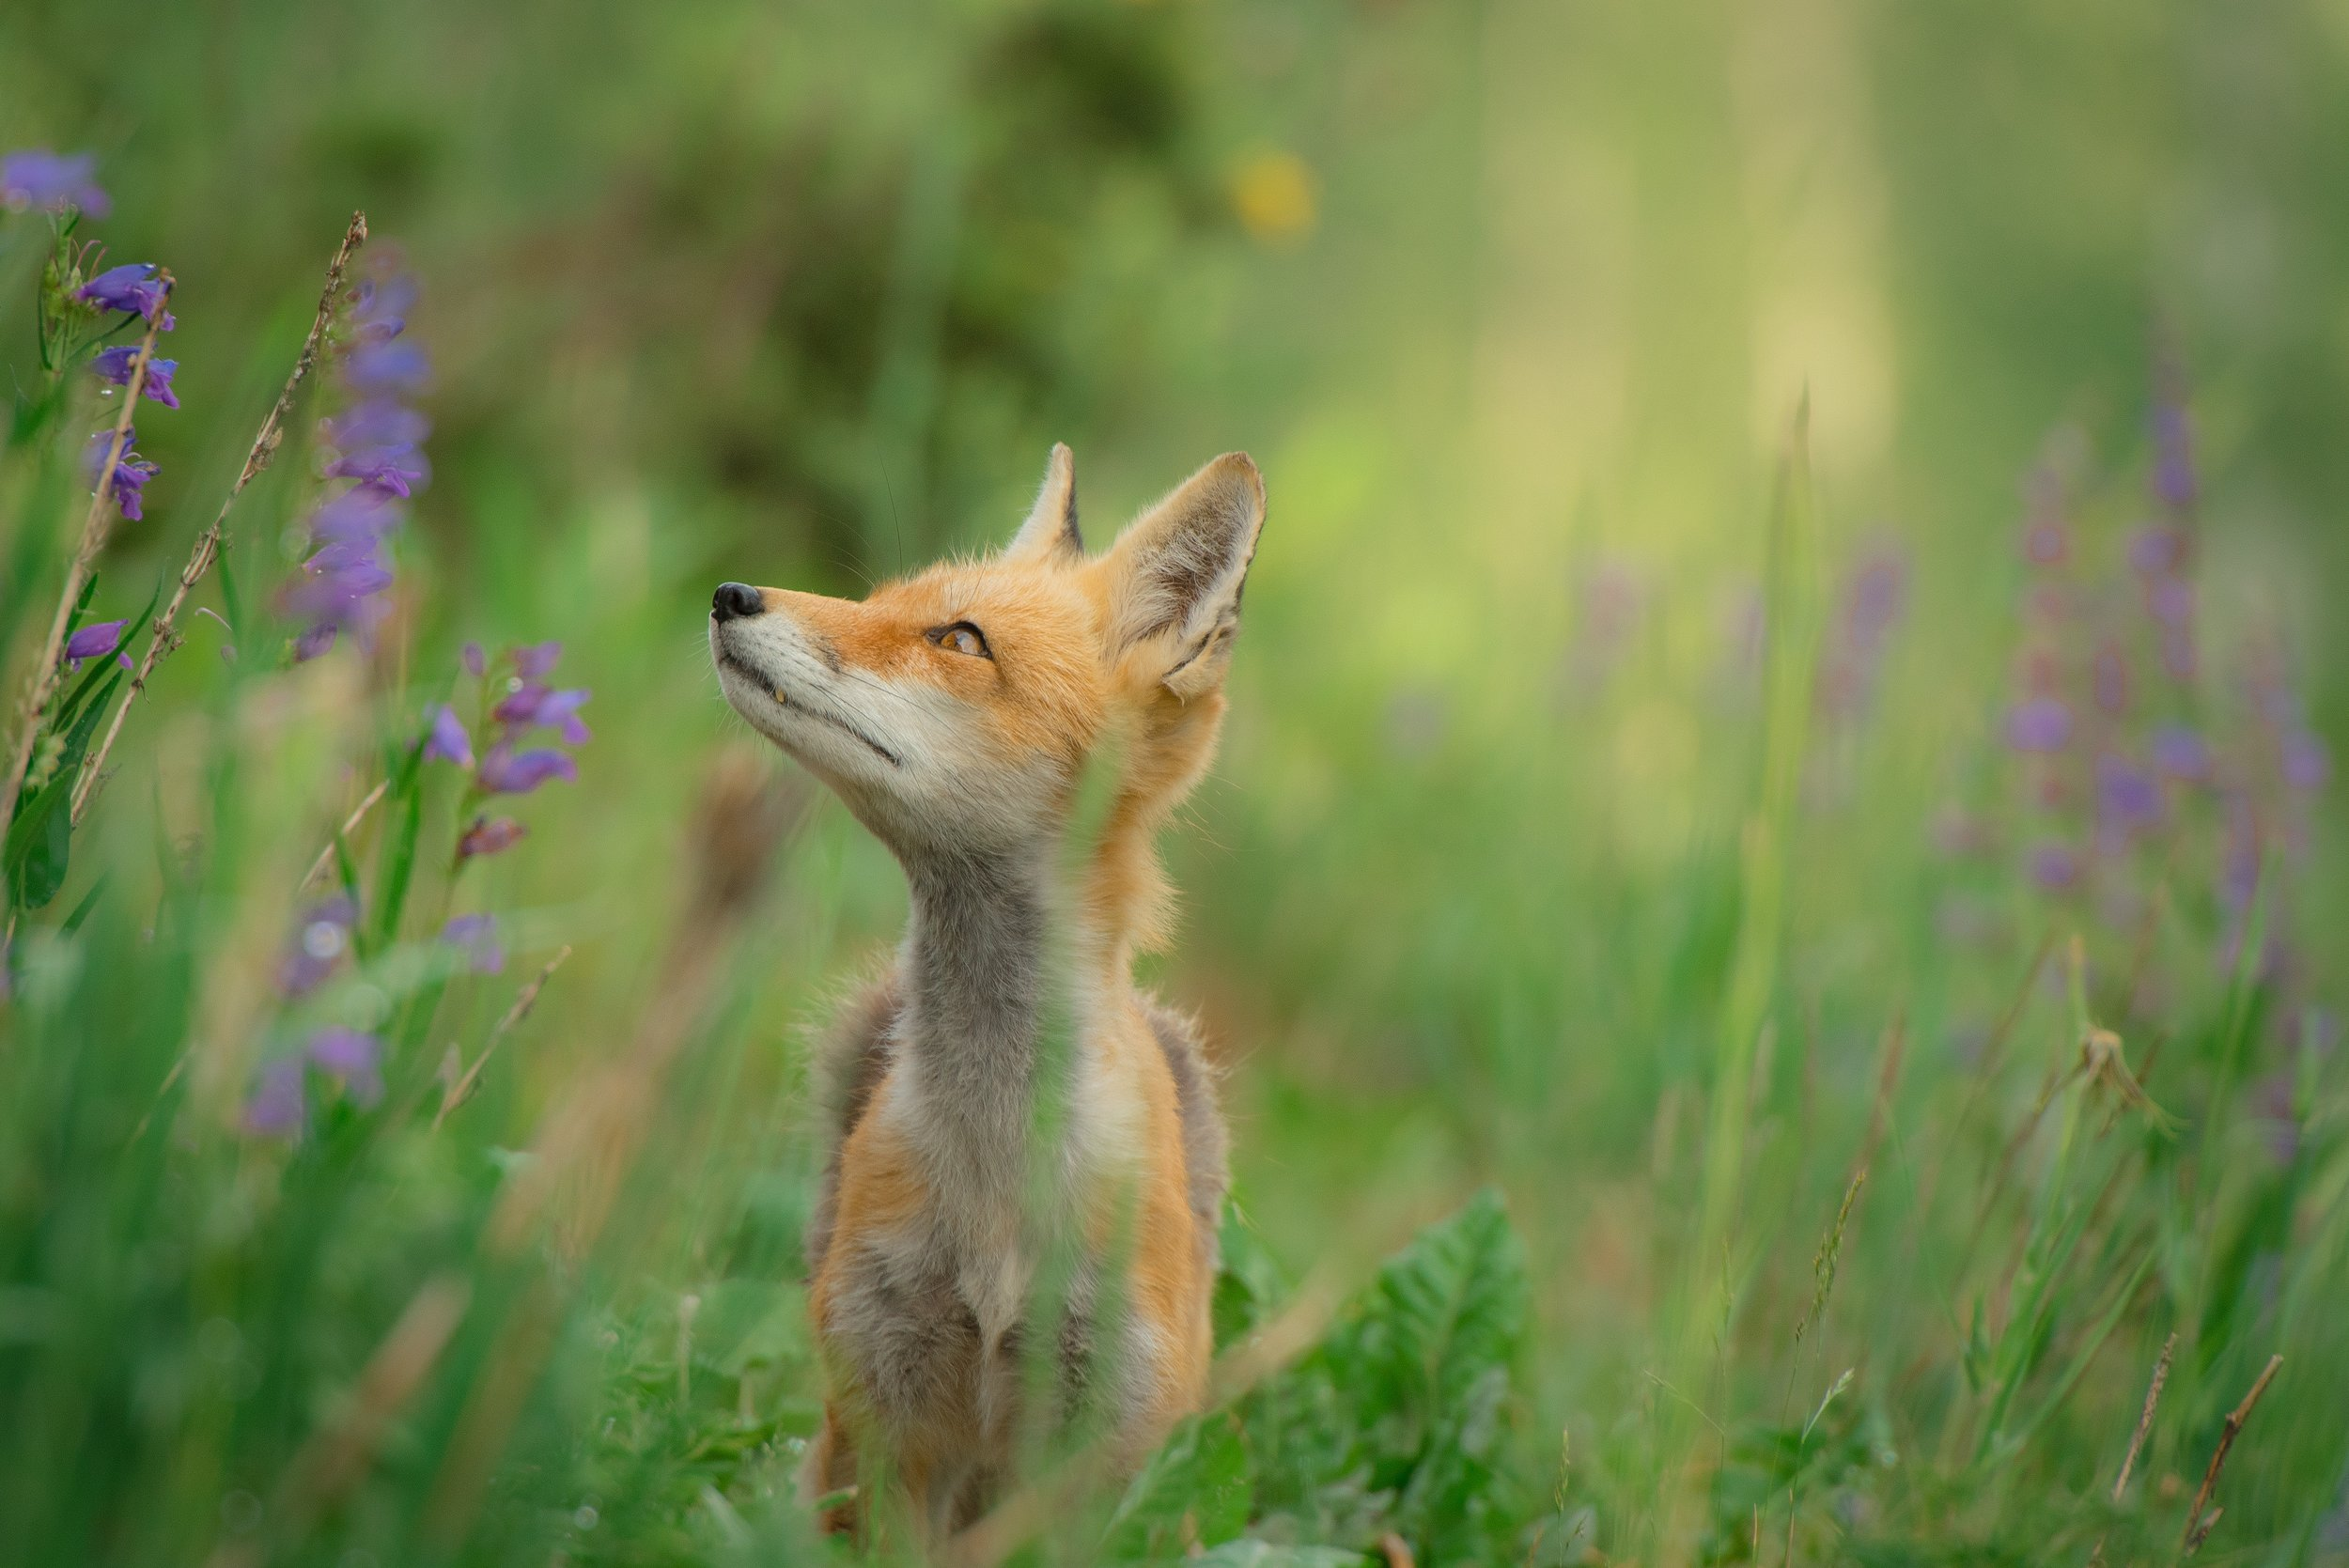 Wildlife guide - The National Wildlife Federation